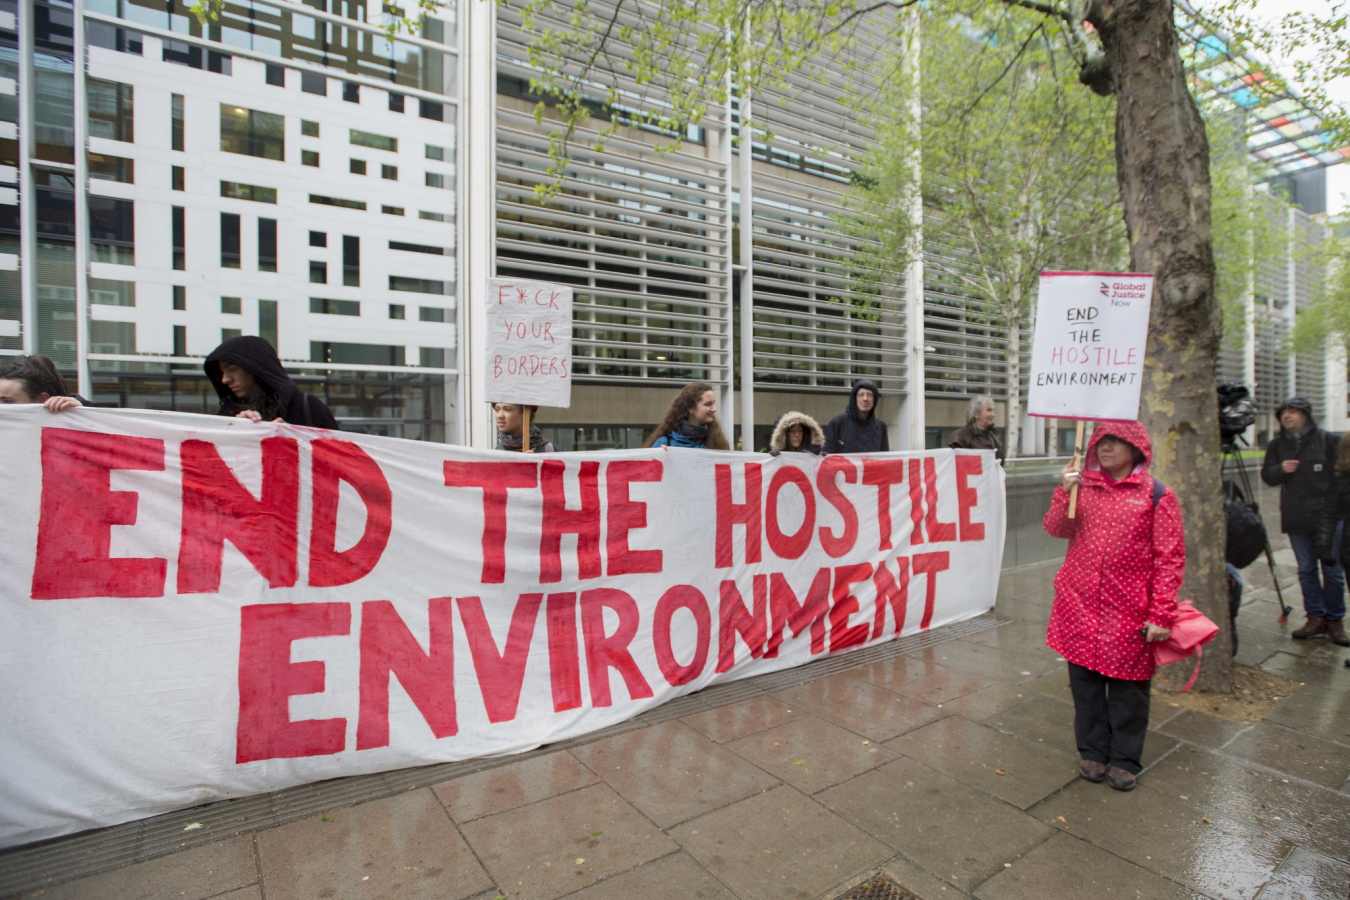 Monday April 30, 2018. Protestors from Global Justice Now demonstrate outside the Home Office in London demanding an end to the Hostile Environment policy.